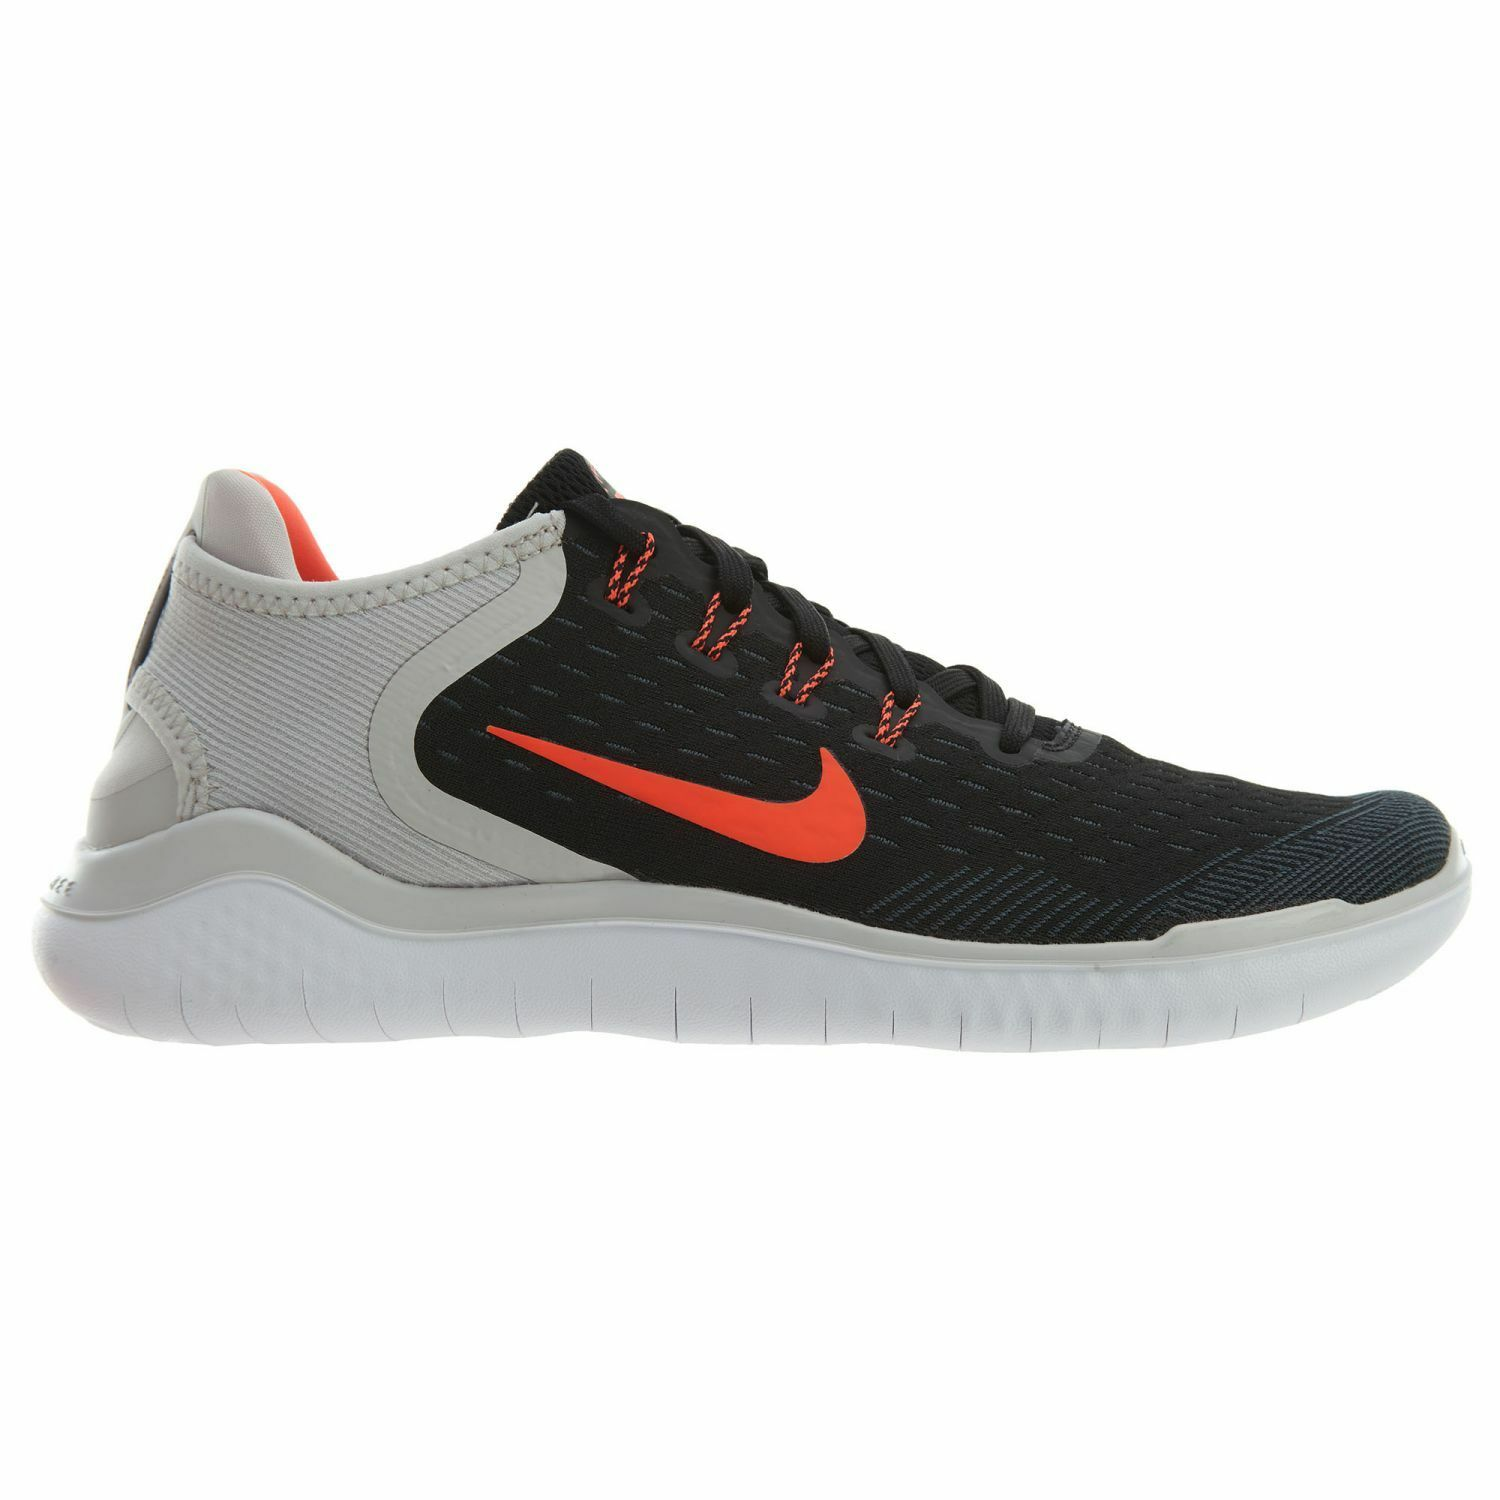 Nike Free Running RN 2018 Mens 942836-005 Black Crimson Grey Running Free Shoes Size 8.5 cab2a8